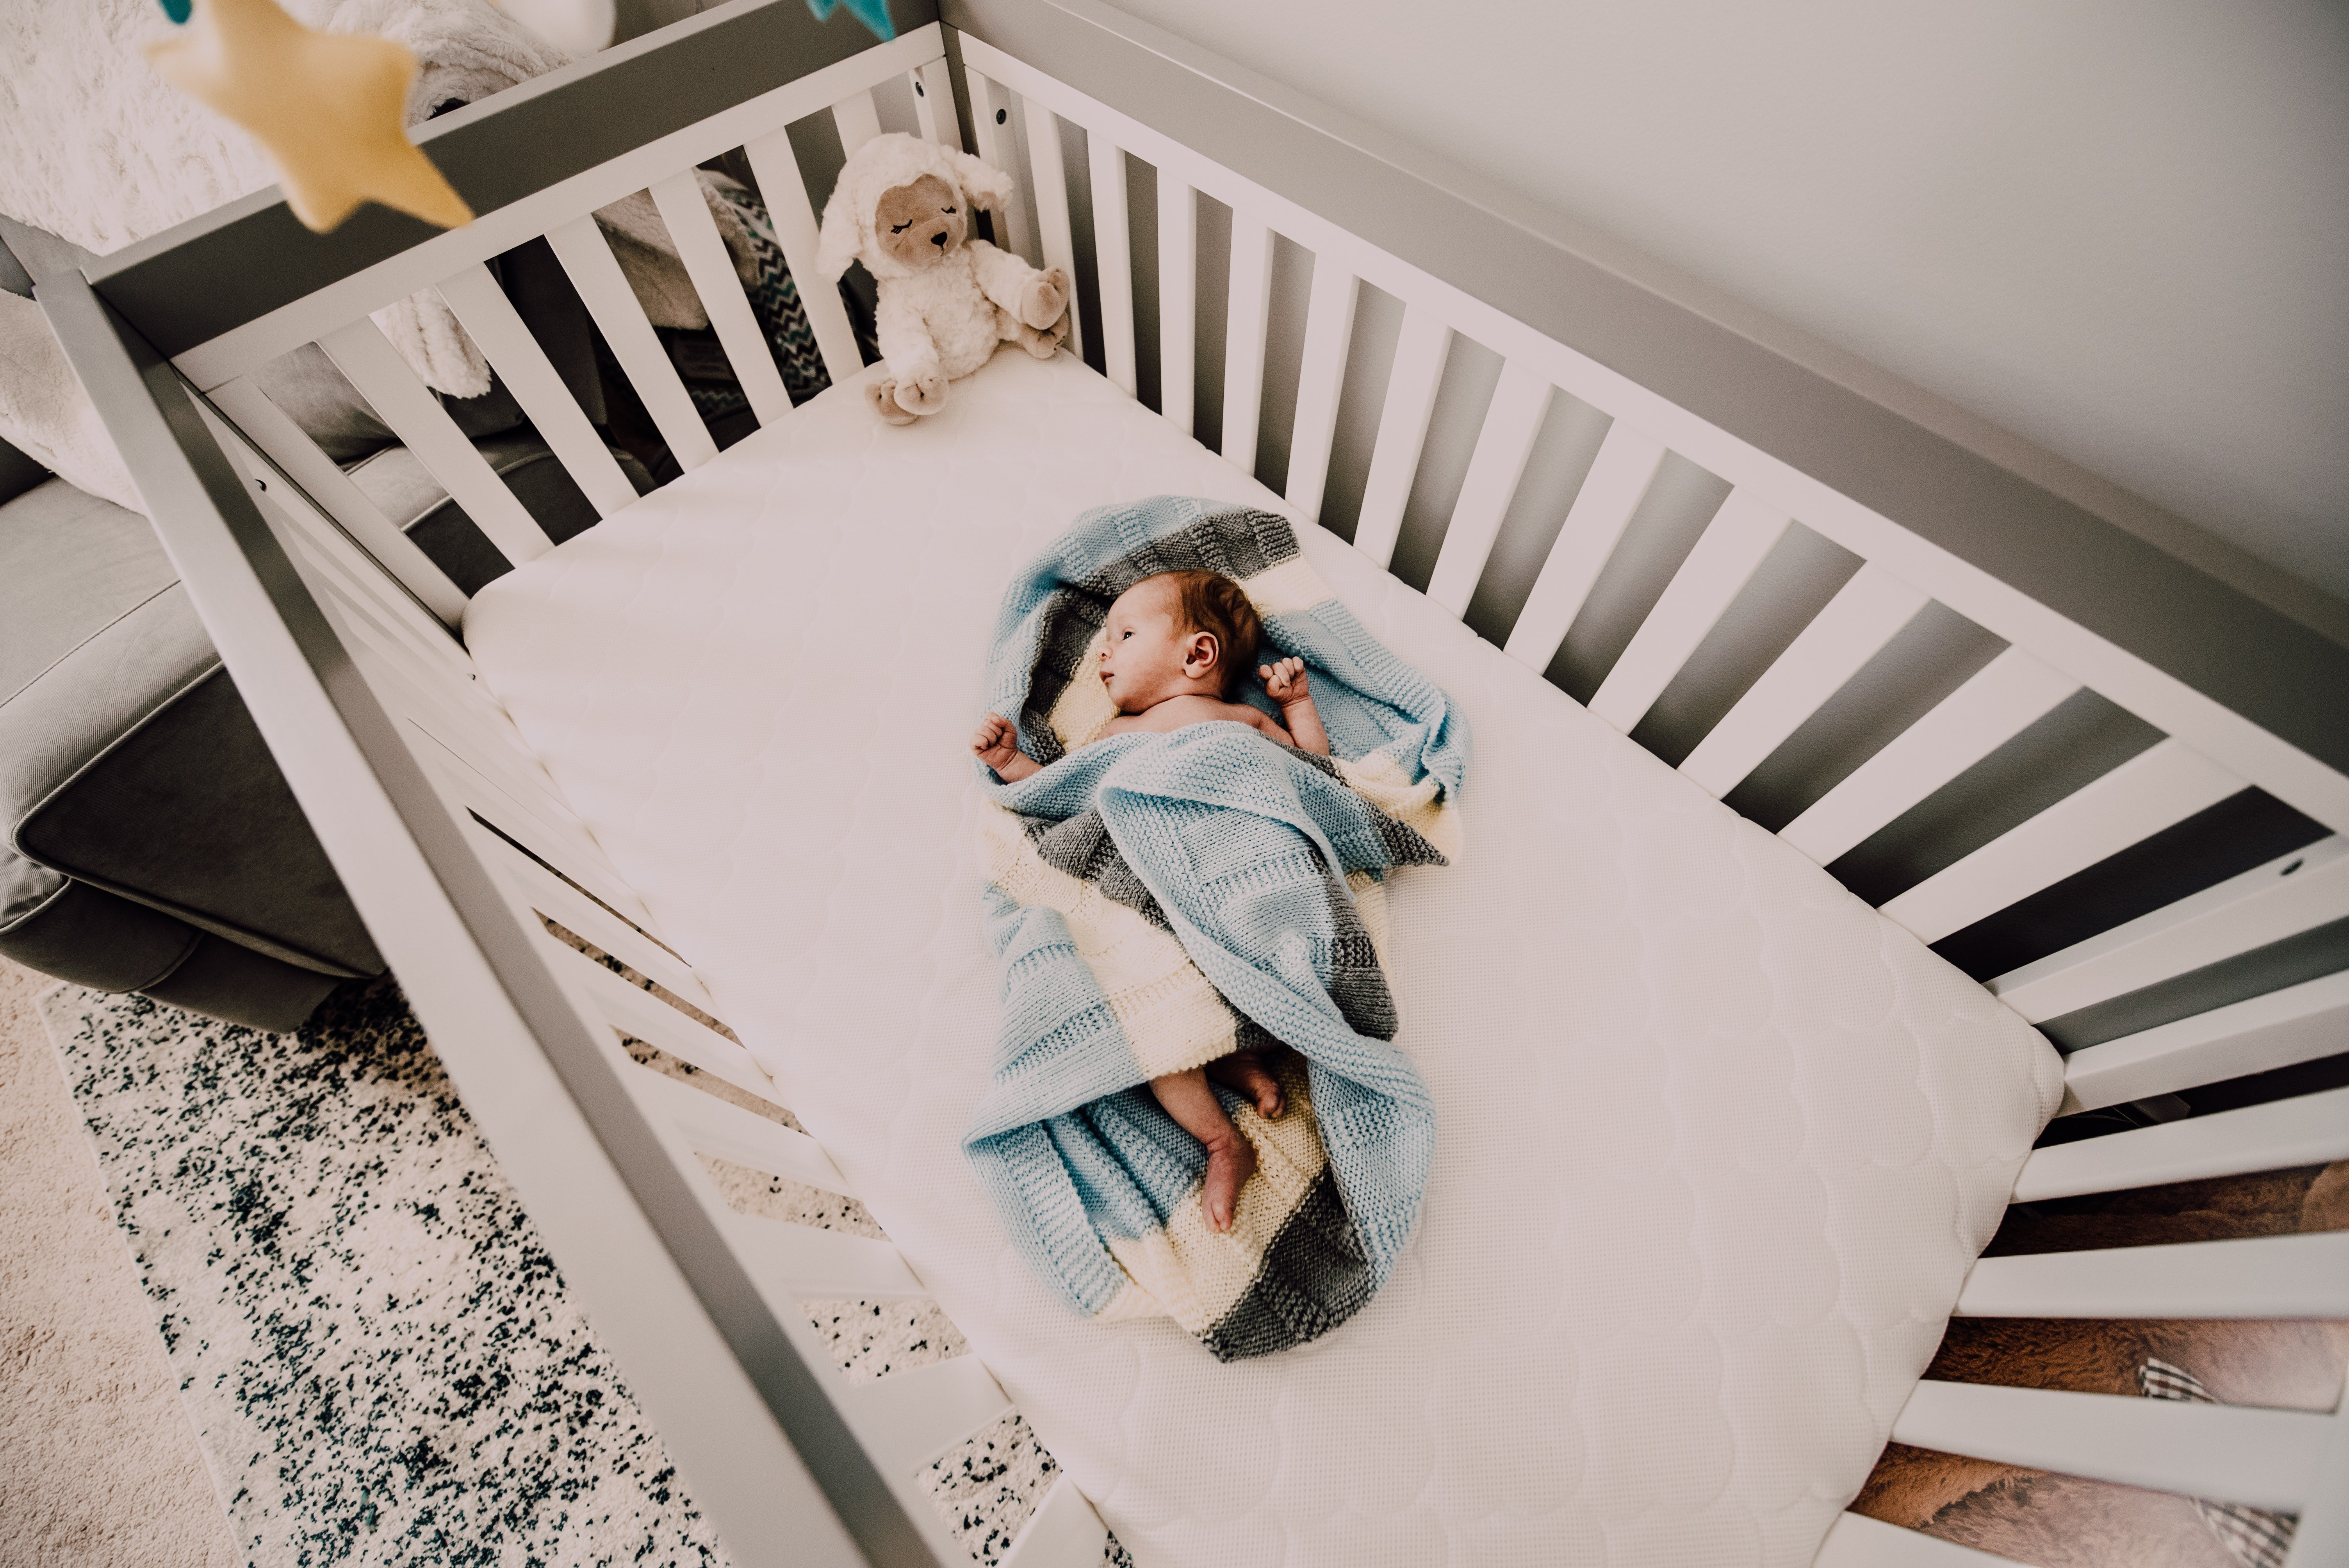 A baby wrapped in a blue blanket sleeping in a crib.   Photo: Pexels/Alicia